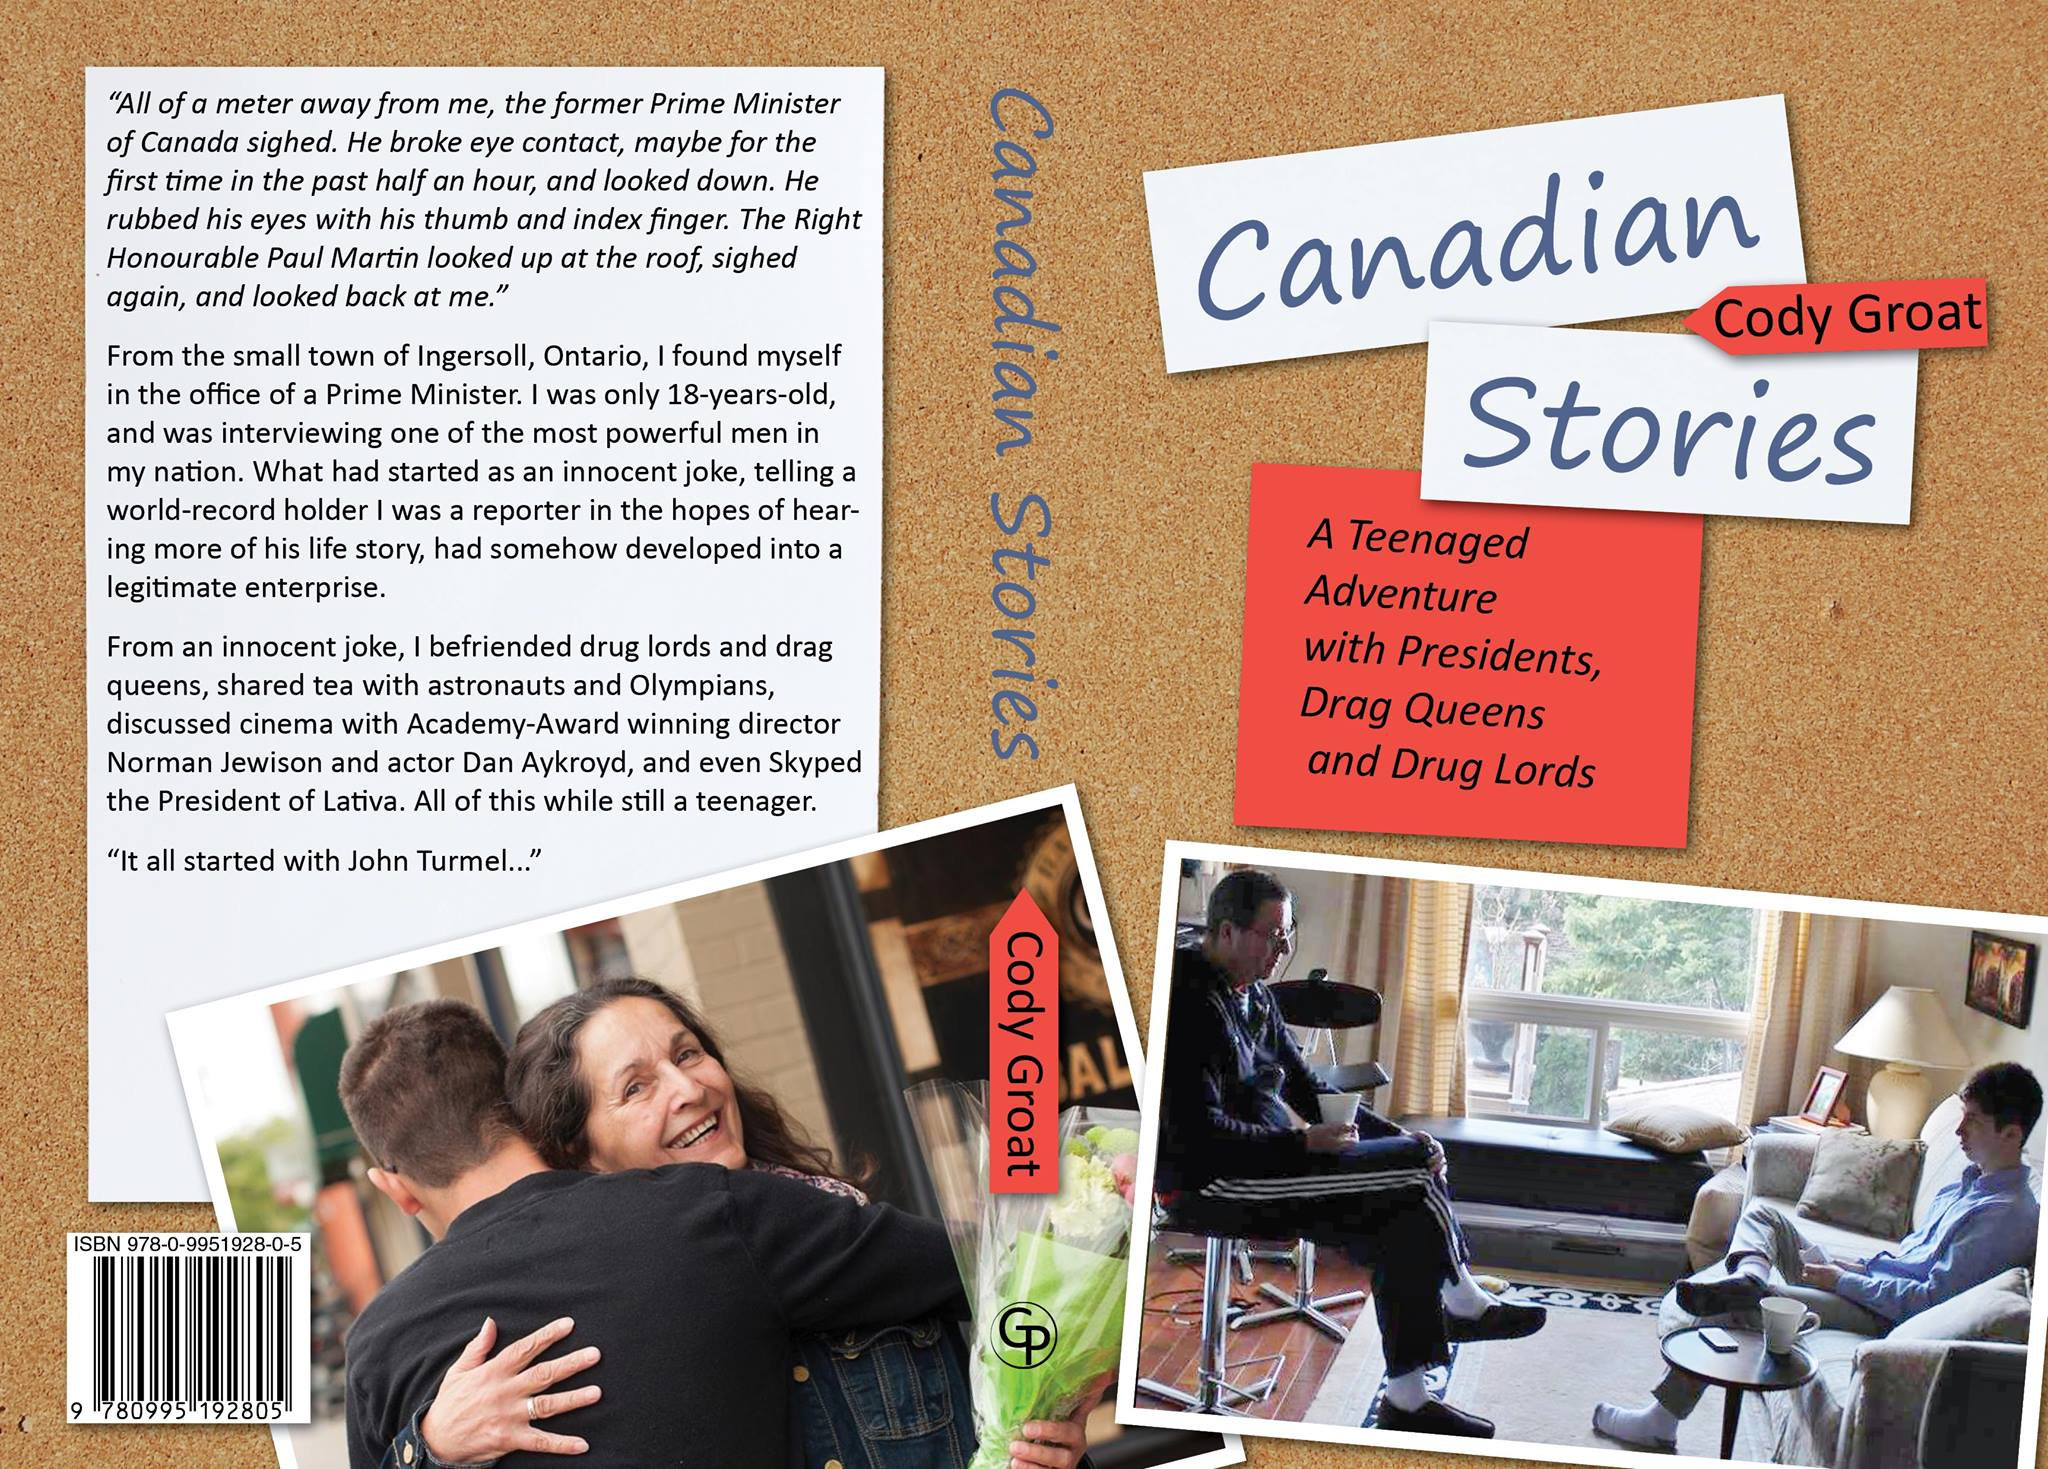 Canadian Stories by Cody Groat